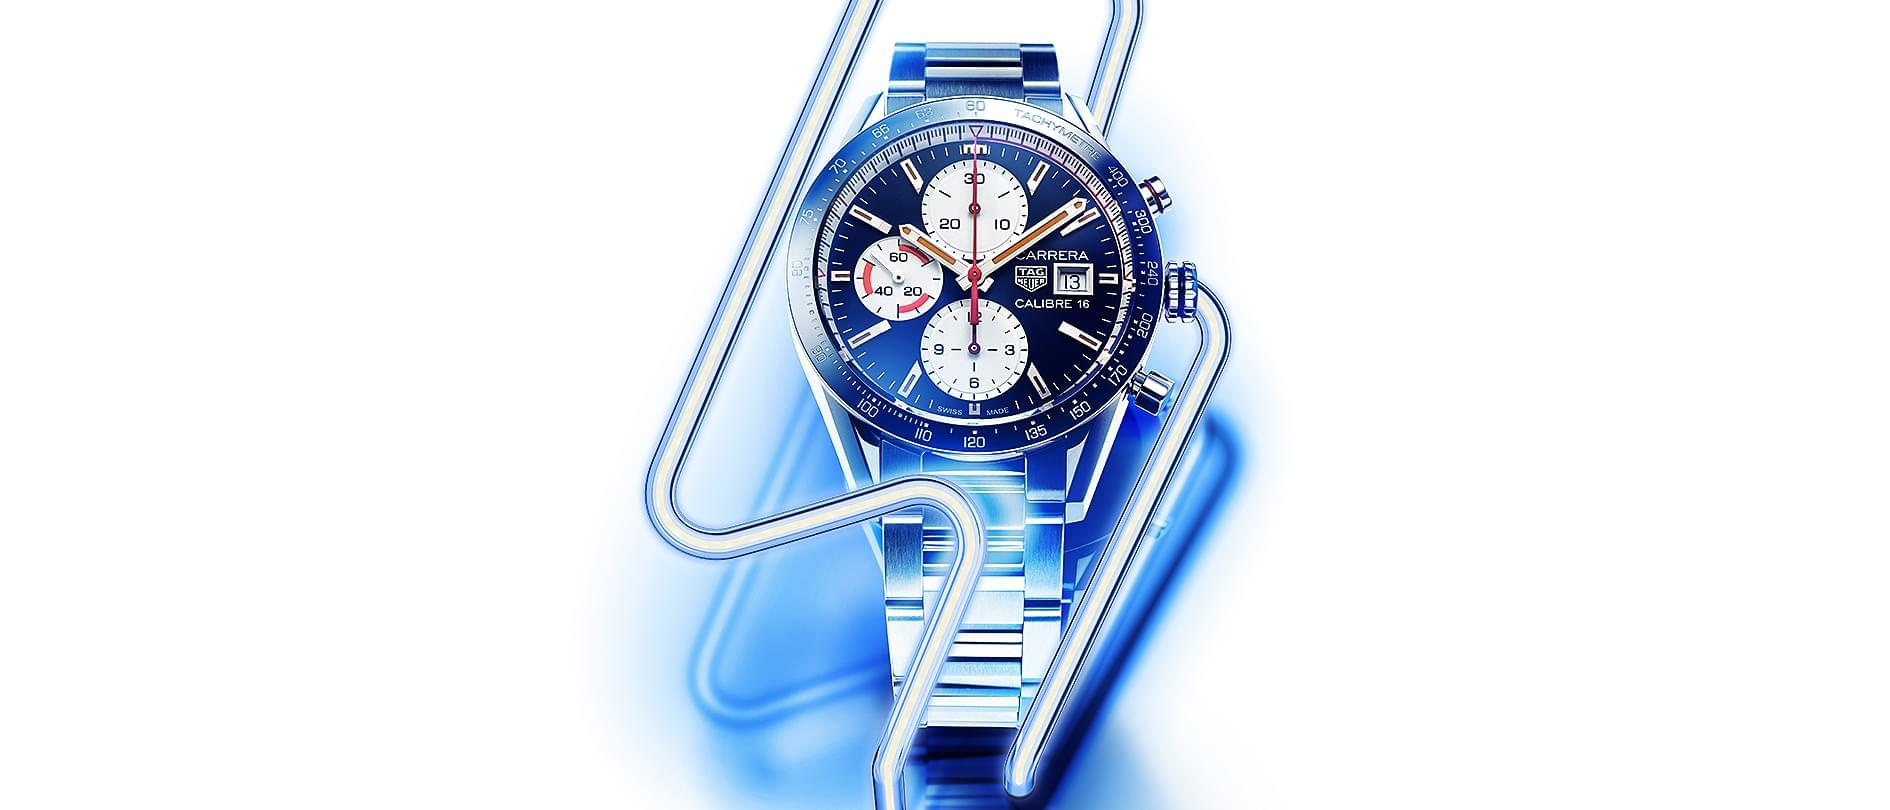 Men's Health Magazine Cover - Tag Heuer Watch